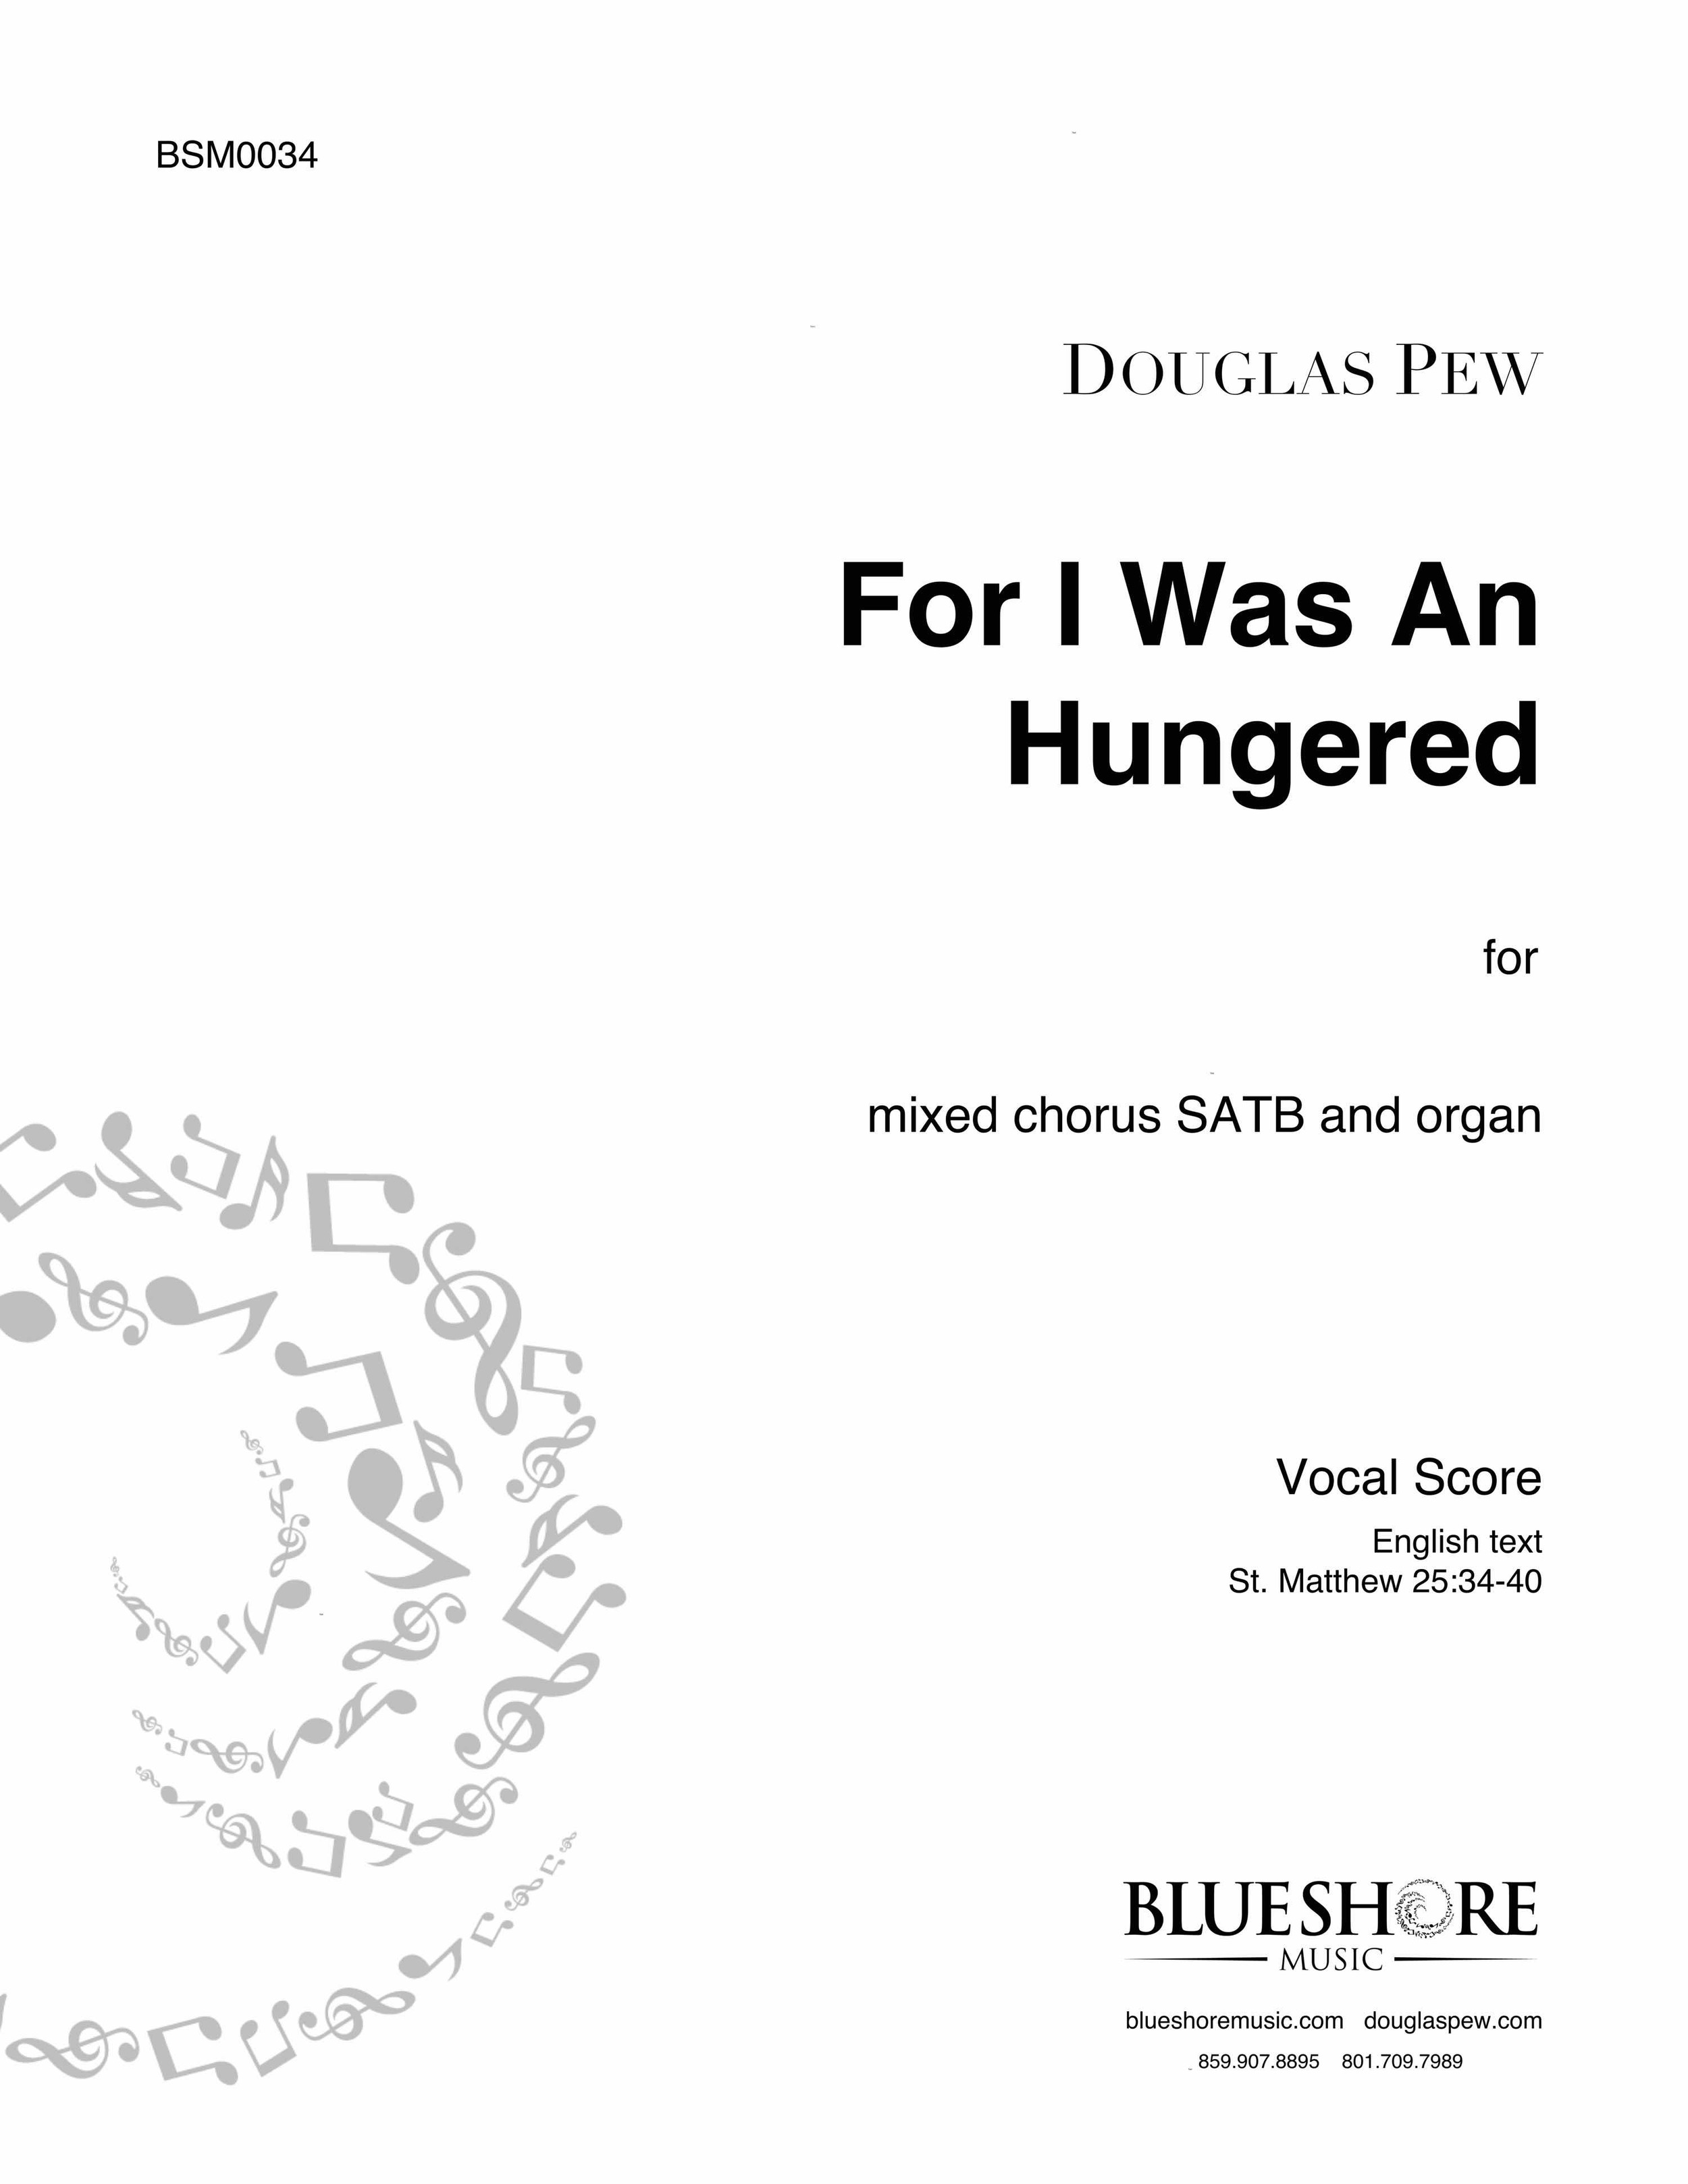 Pew_BSM0034_ForIWasAnHungered_cover_smaller.jpg